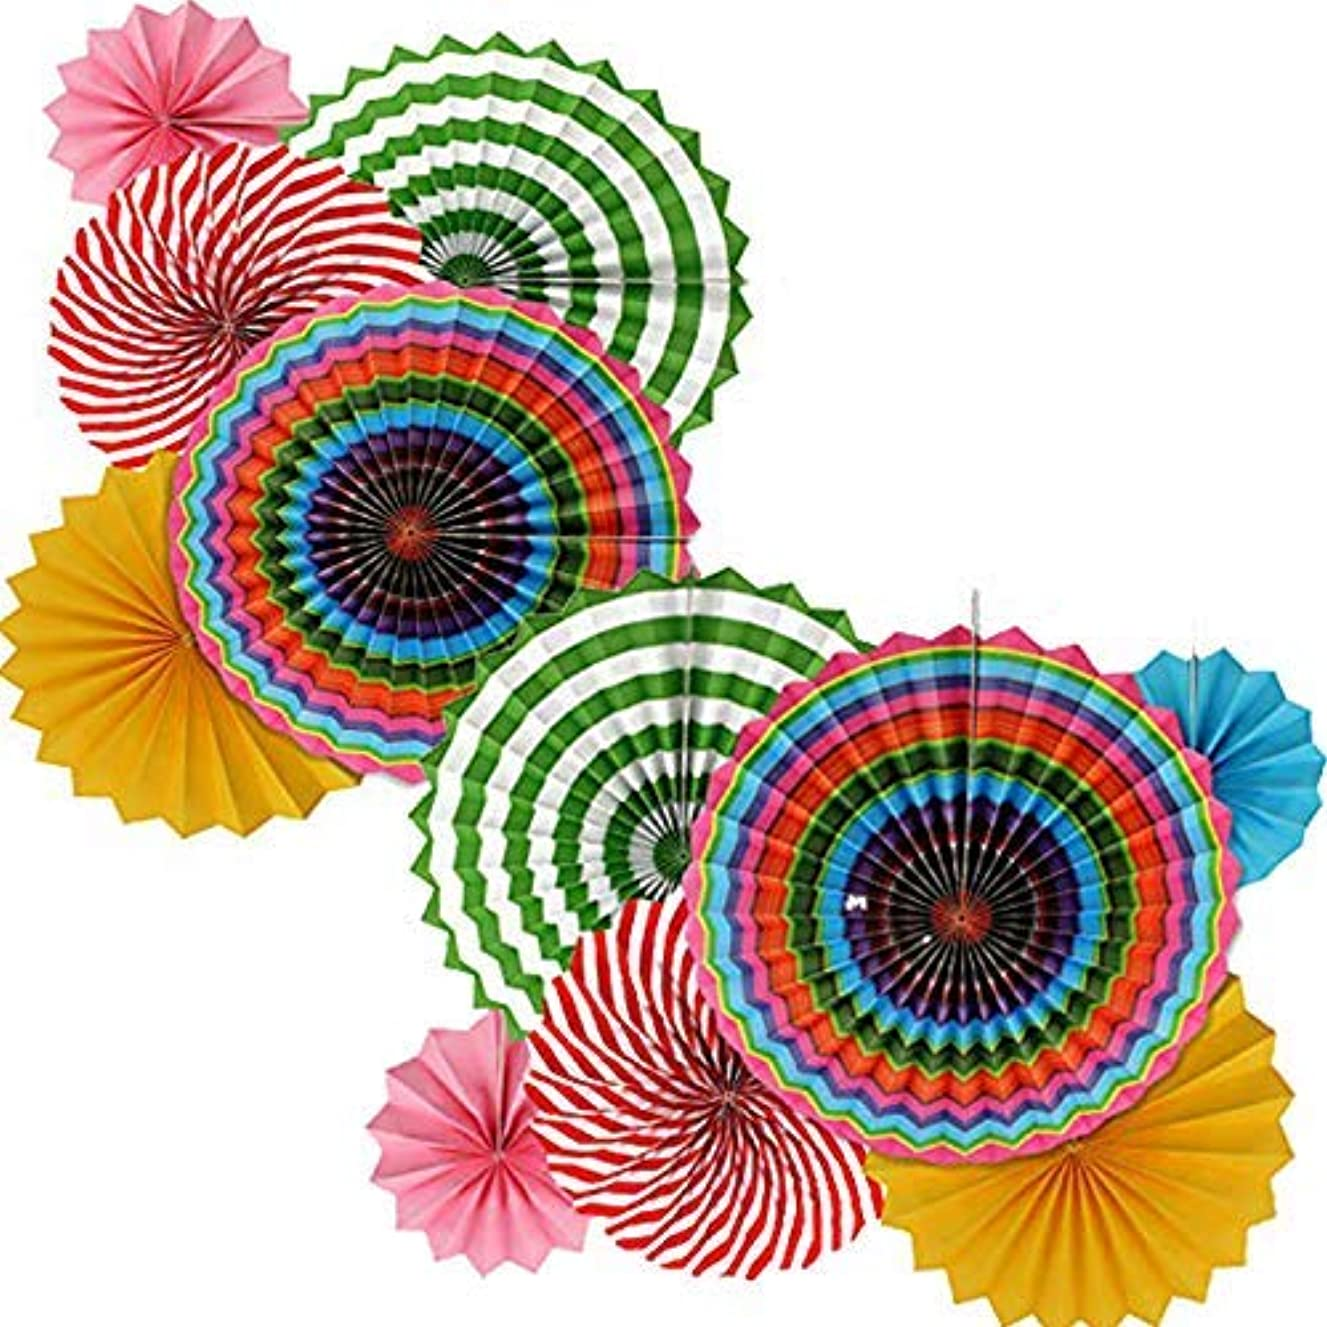 Adorox Set of 12 Vibrant Bright Colors Cino De Mayo Hanging Paper Fans Rosettes Party Decoration for Holidays 8